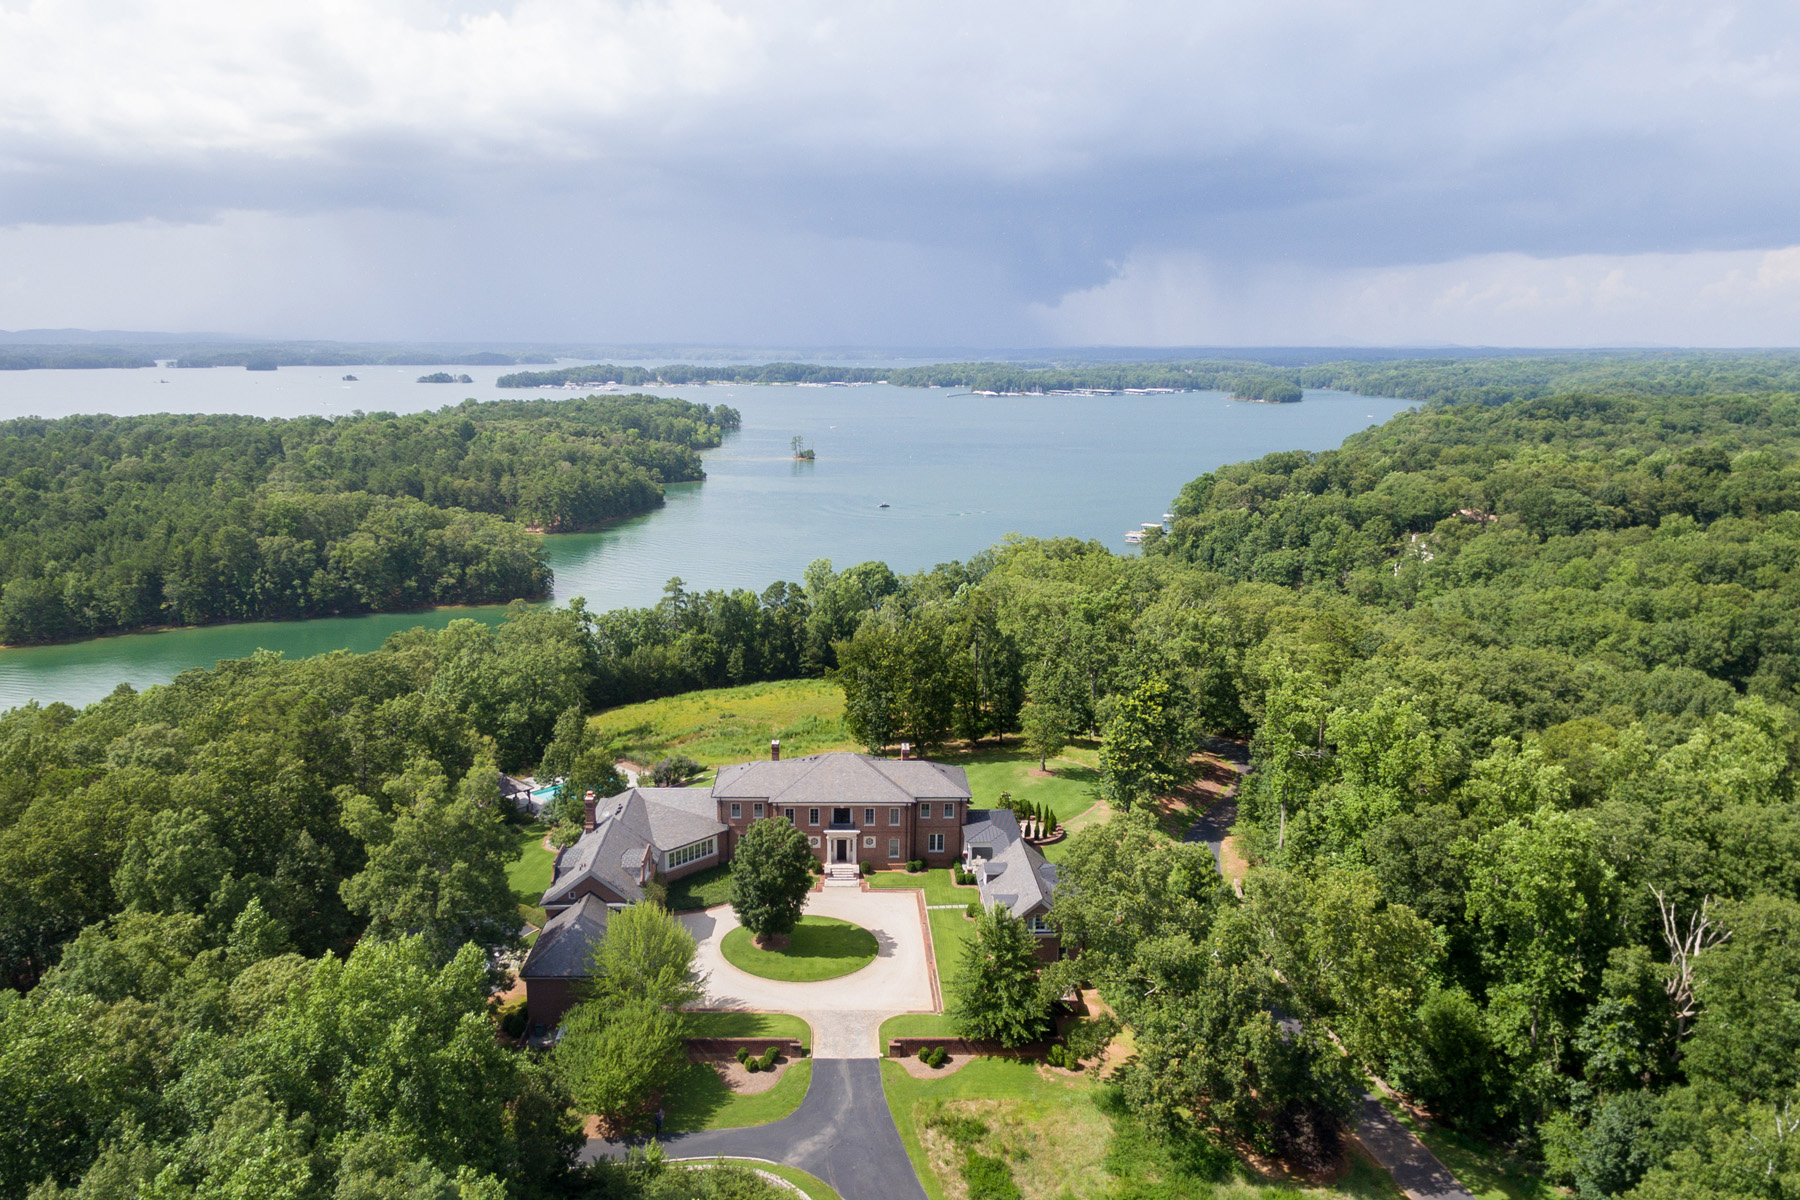 Single Family Homes for Sale at Commanding Residence Overlooking Lake Lanier 6531 Athletic Club Drive Flowery Branch, Georgia 30542 United States